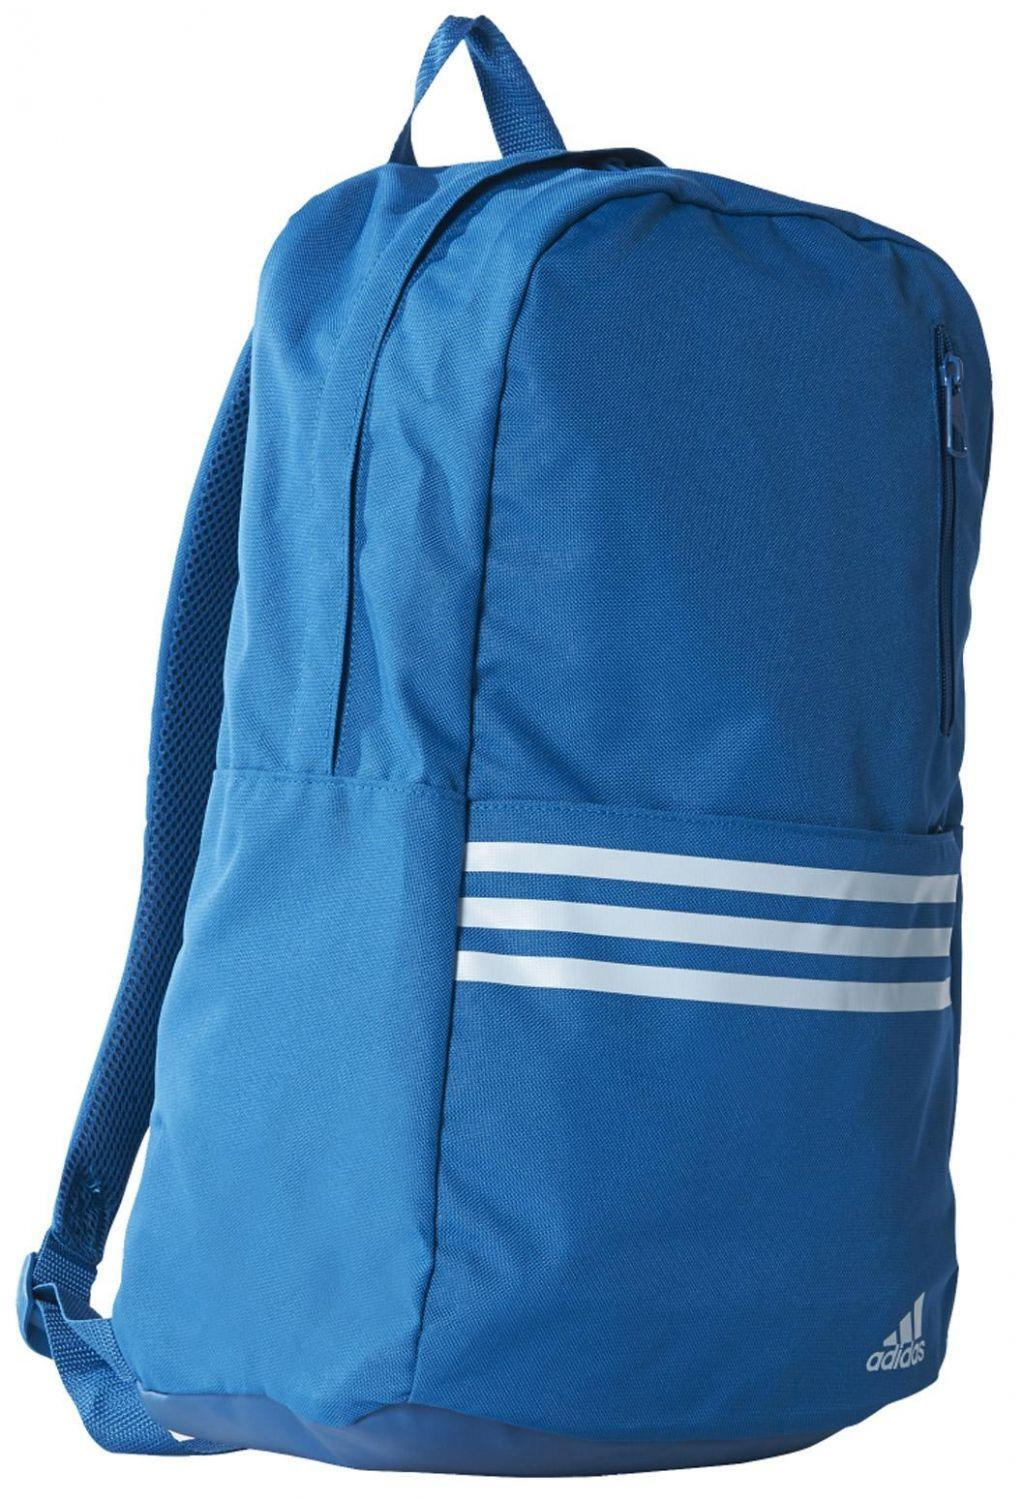 adidas-versatile-backpack-rucksack-farbe-unity-blue-f16-ice-blue-f16-ice-blue-f16-